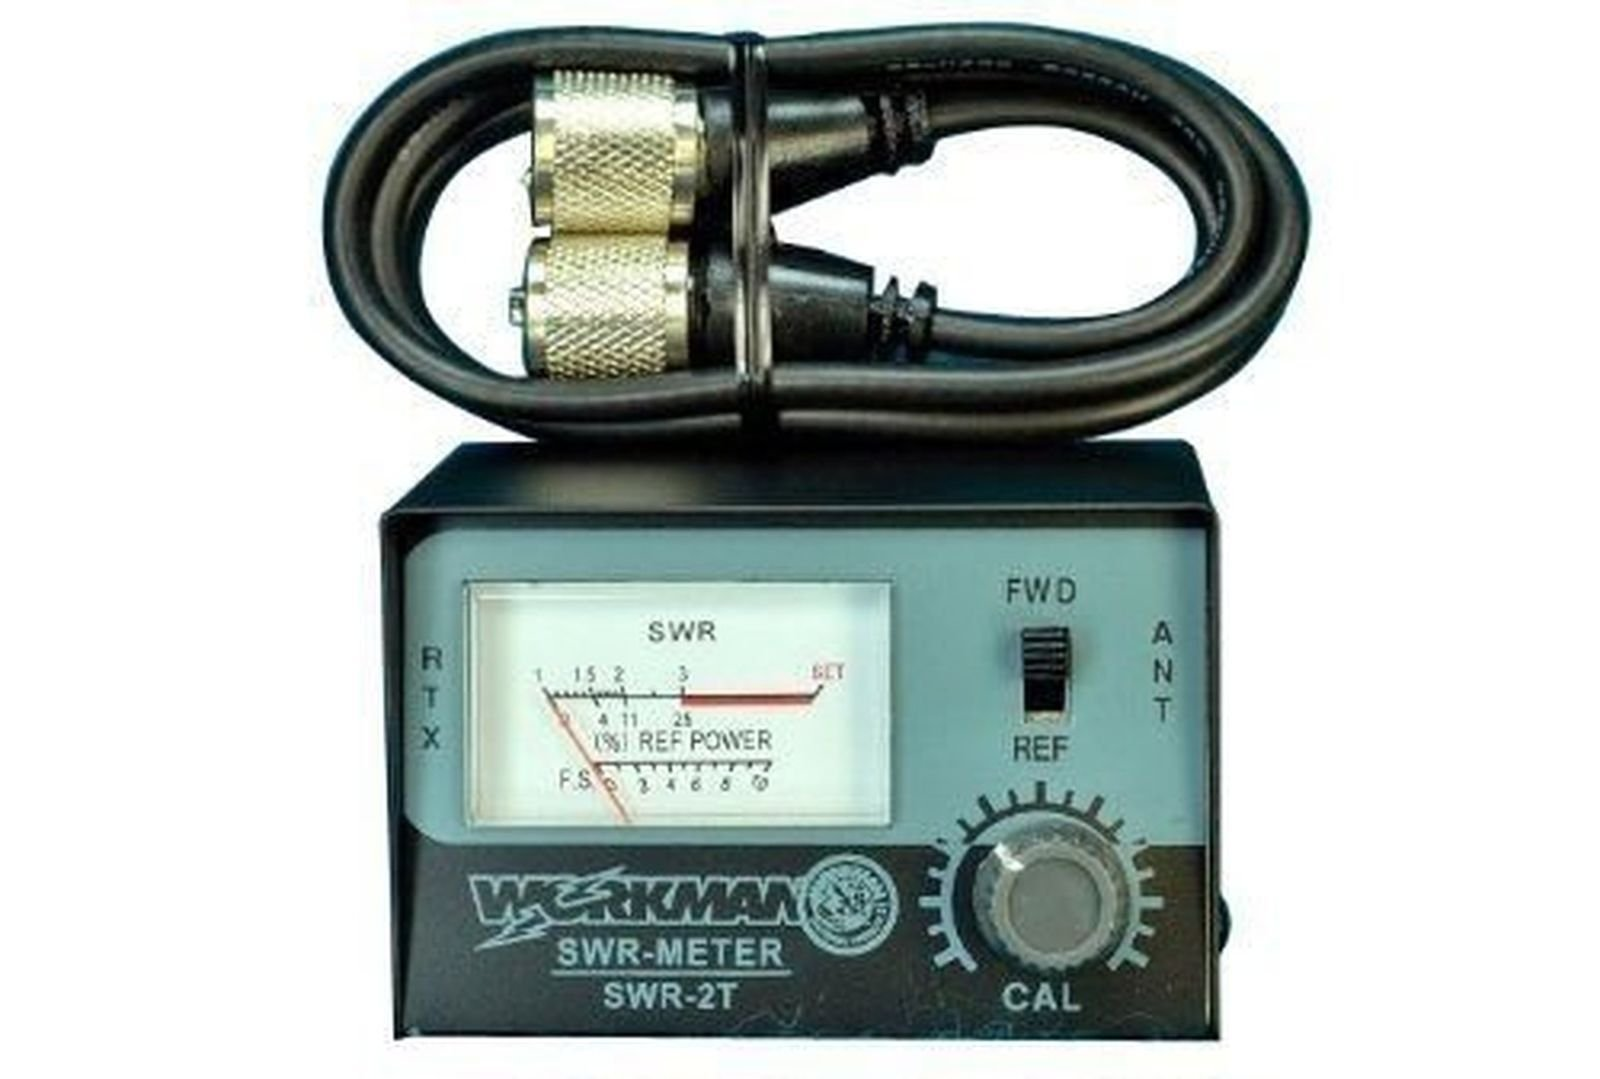 Amazon Swr Meter For Cb Radio Antennas With 3 Jumper Cable